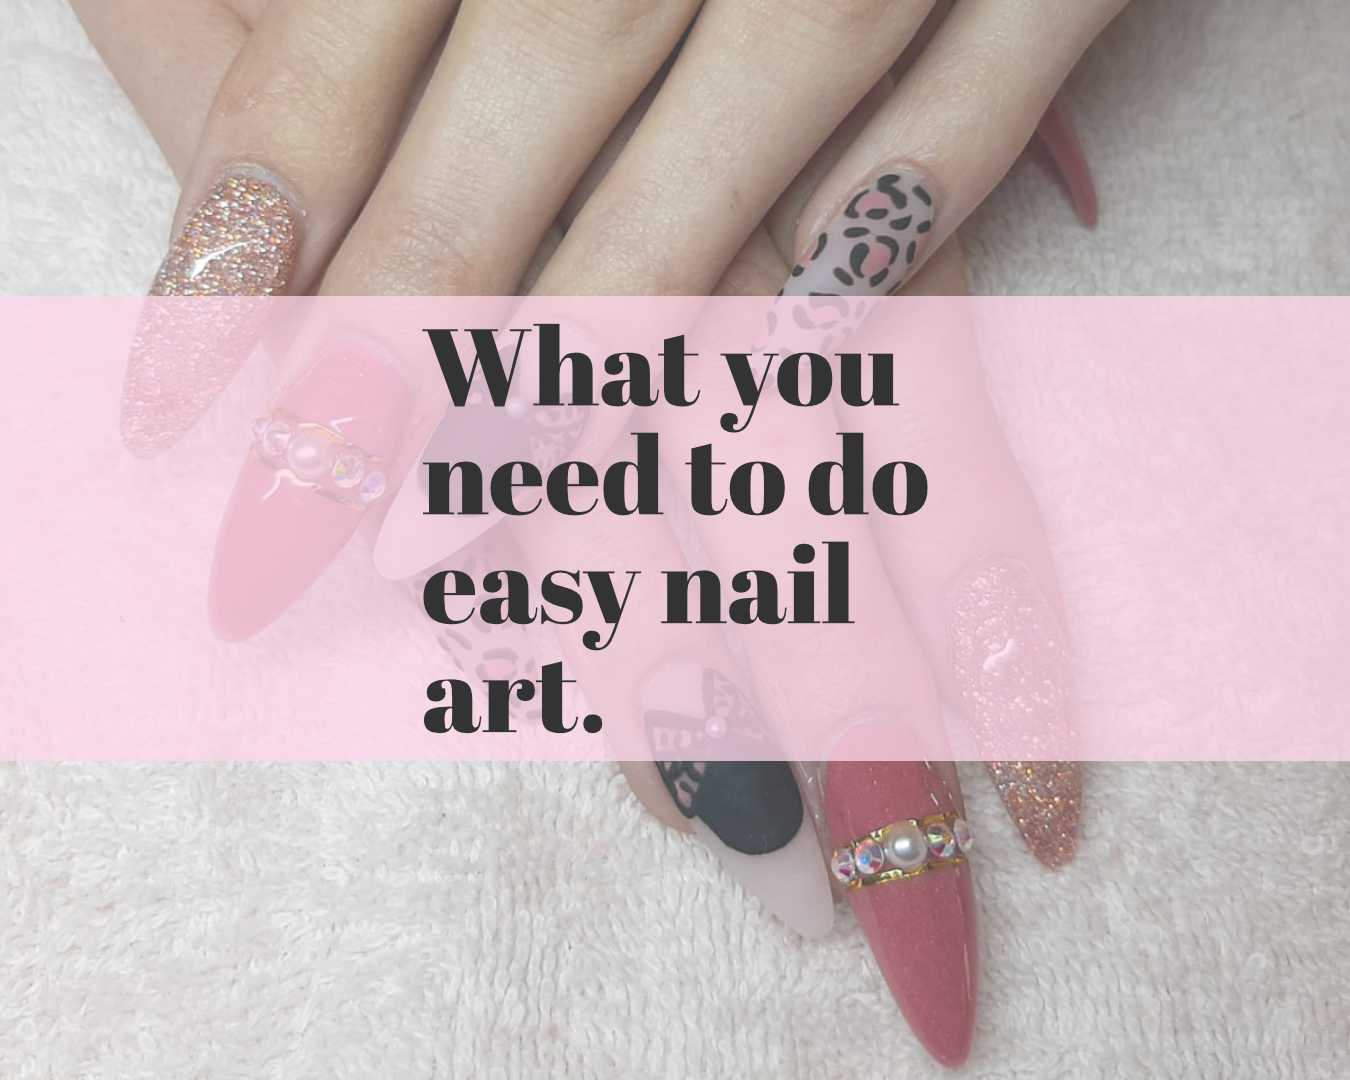 what you need to do easy nail art